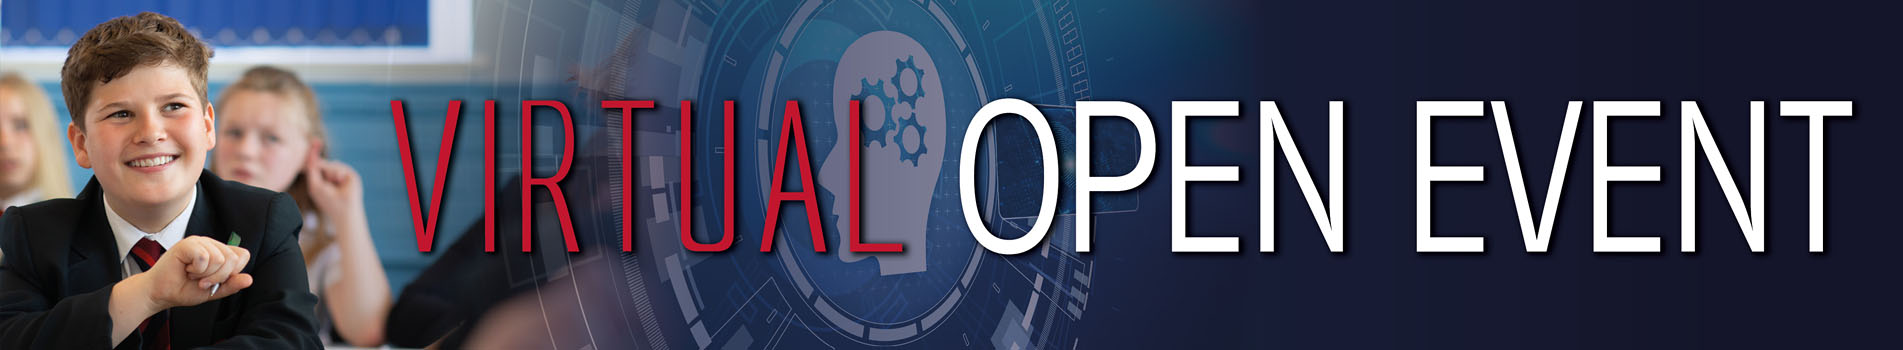 Virtual Open Event